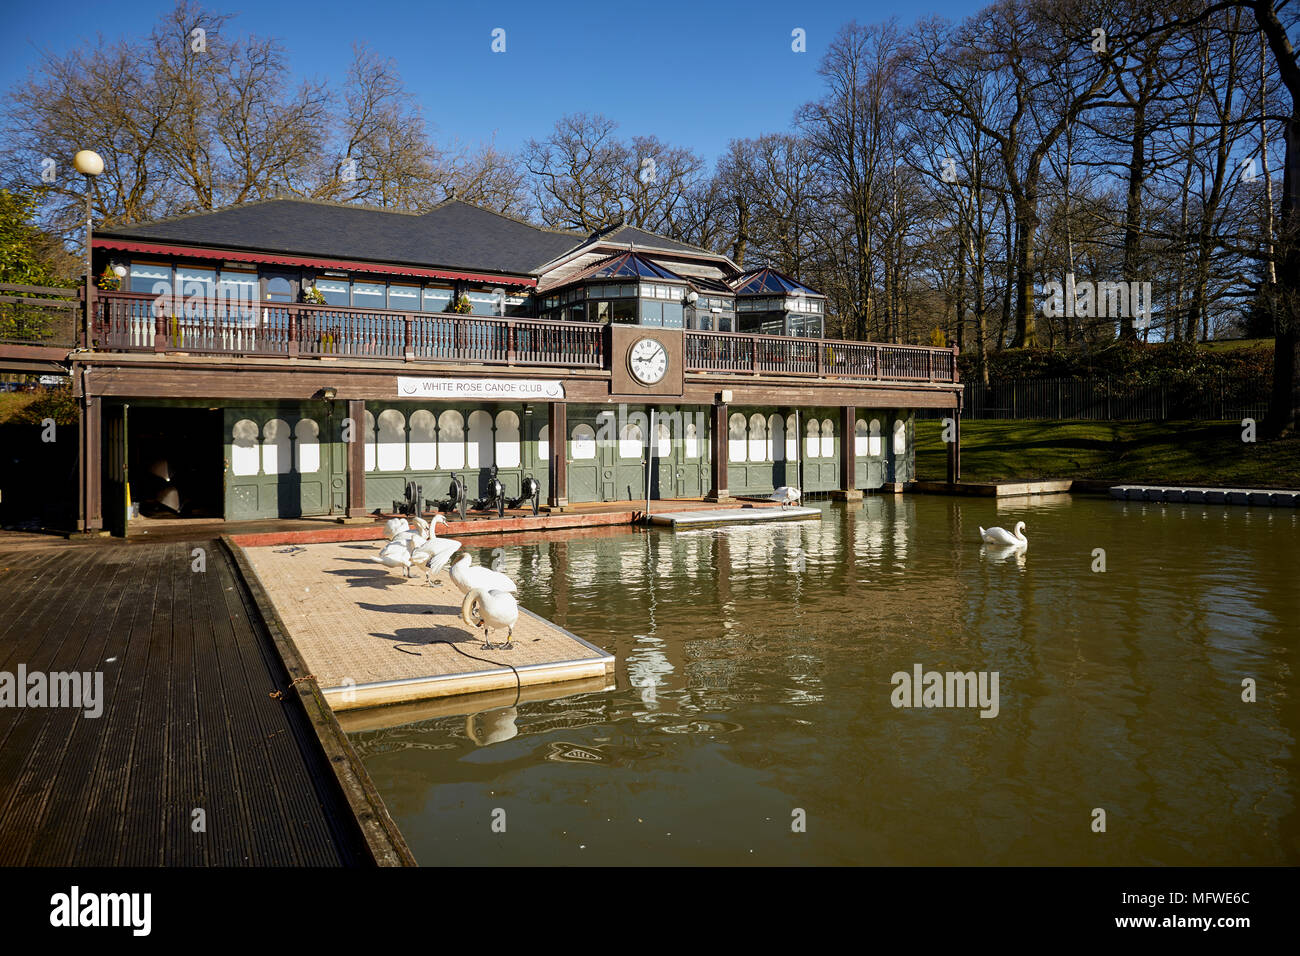 Leeds Rowing club at the Roundhay Boathouse in Roundhay Park, Leeds, Yorkshire. Stock Photo